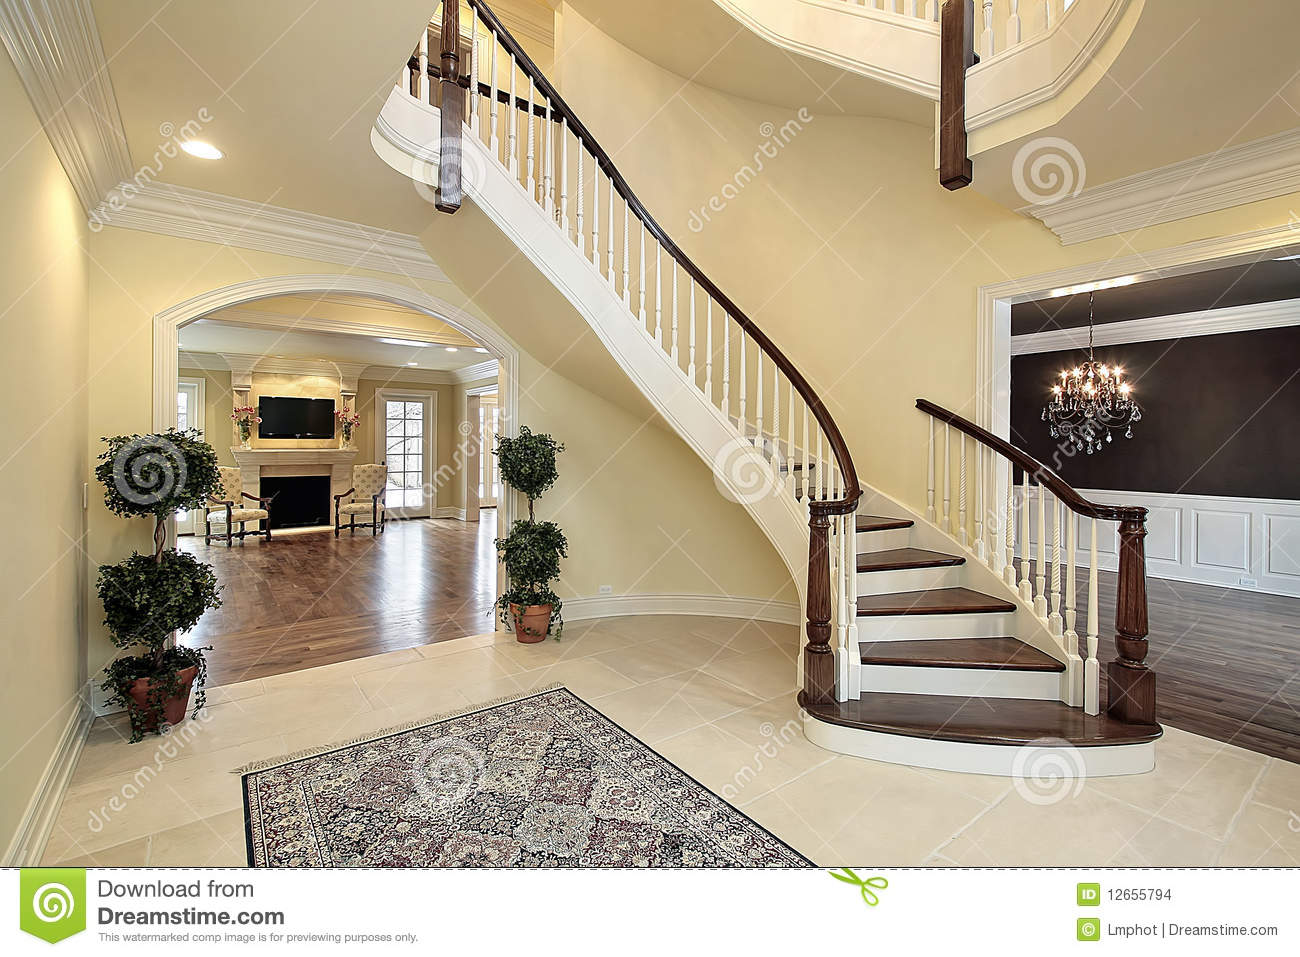 Foyer With Spiral Staircase : Foyer with curved staircase stock images image